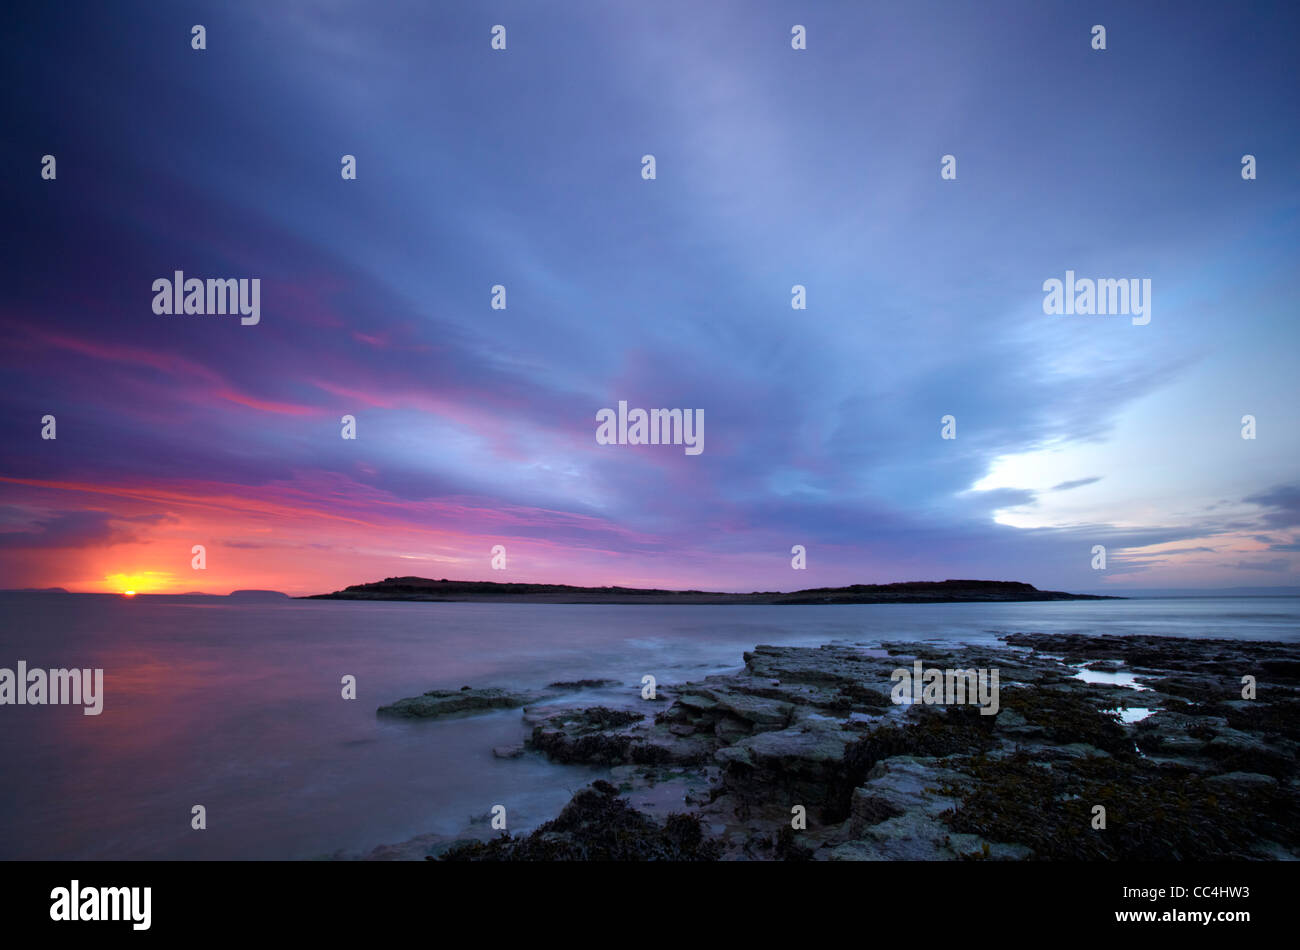 Sully Island, Sully, Vale of Glamorgan, Bristol Channel, December Dawn. - Stock Image